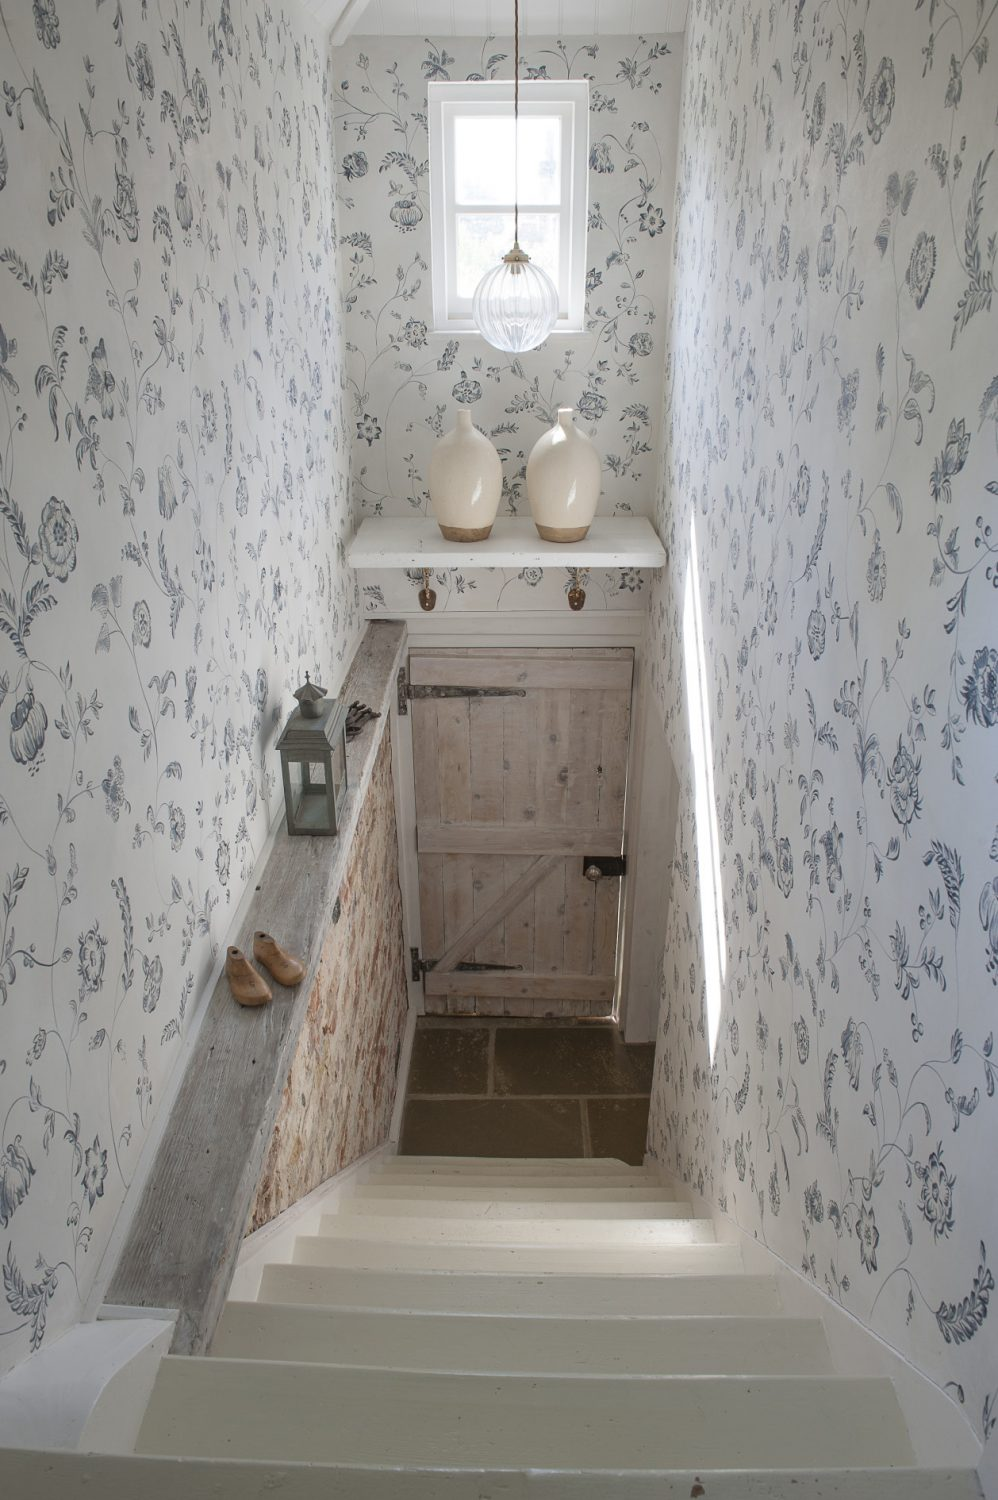 Original brickwork has been exposed below the painted walls on the ascent up the staircase